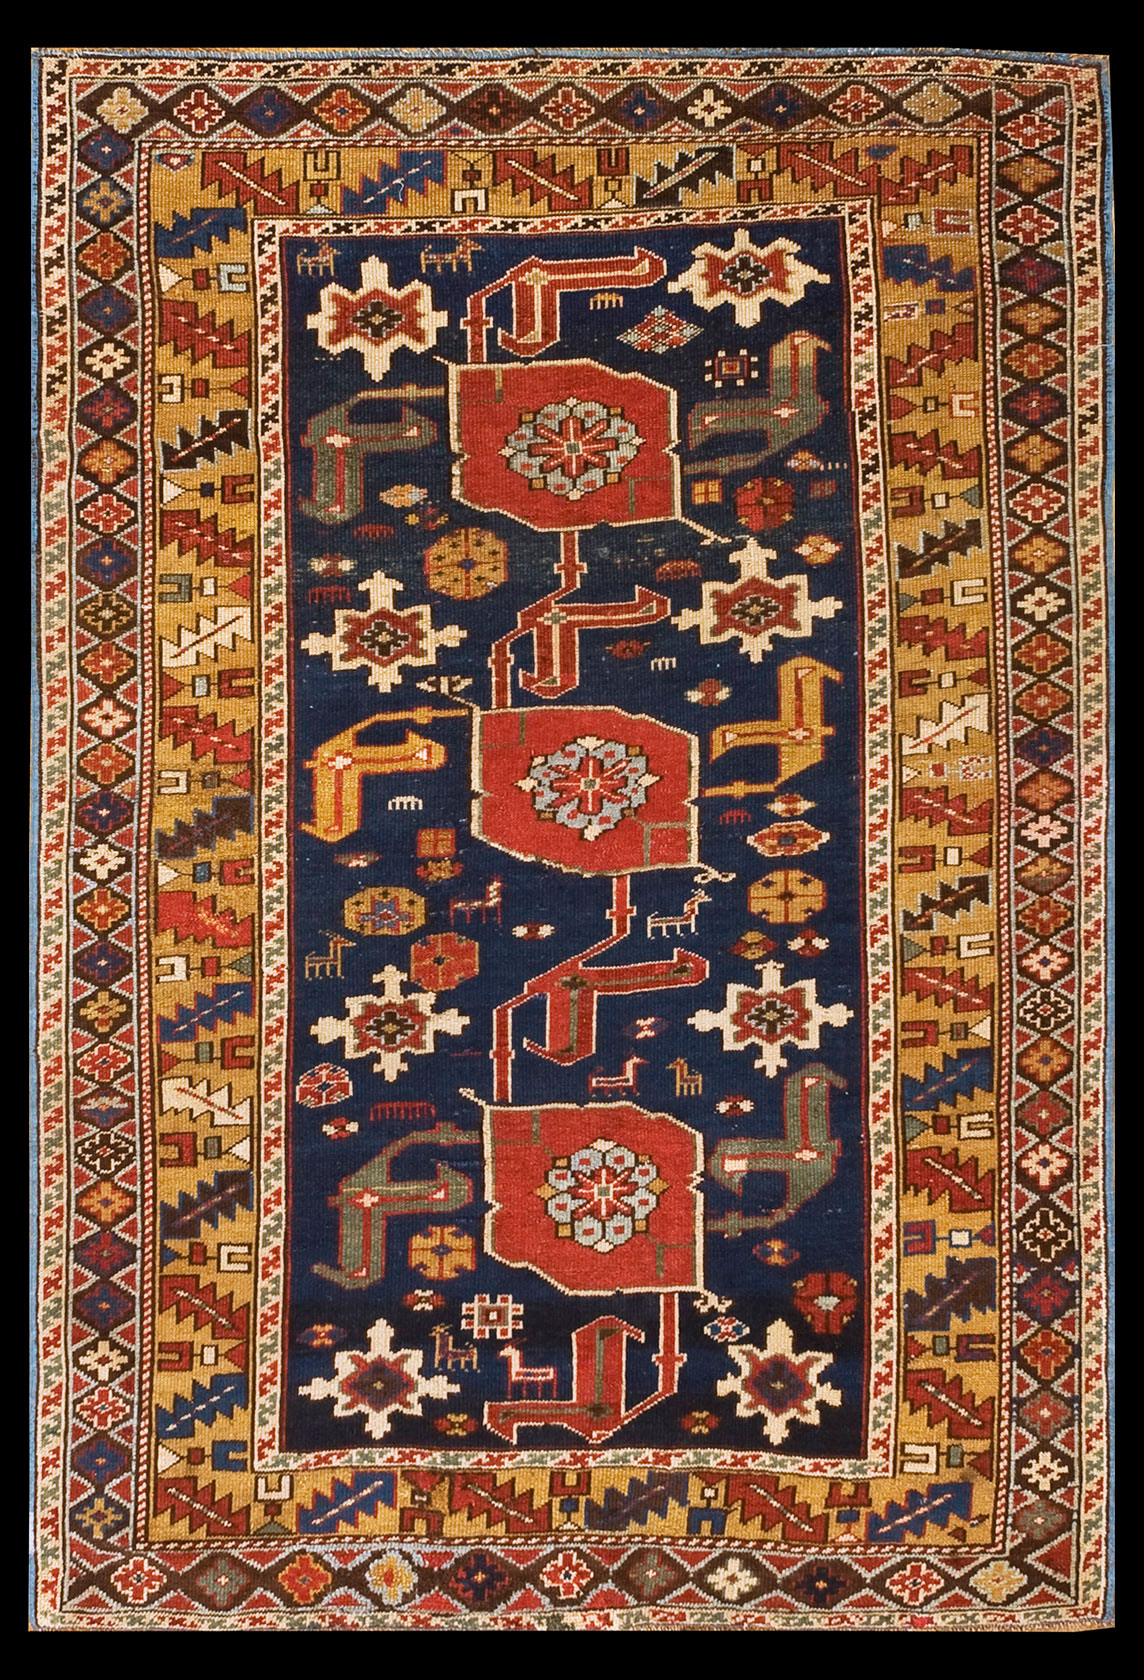 Antique karagashli Rug - # 8665